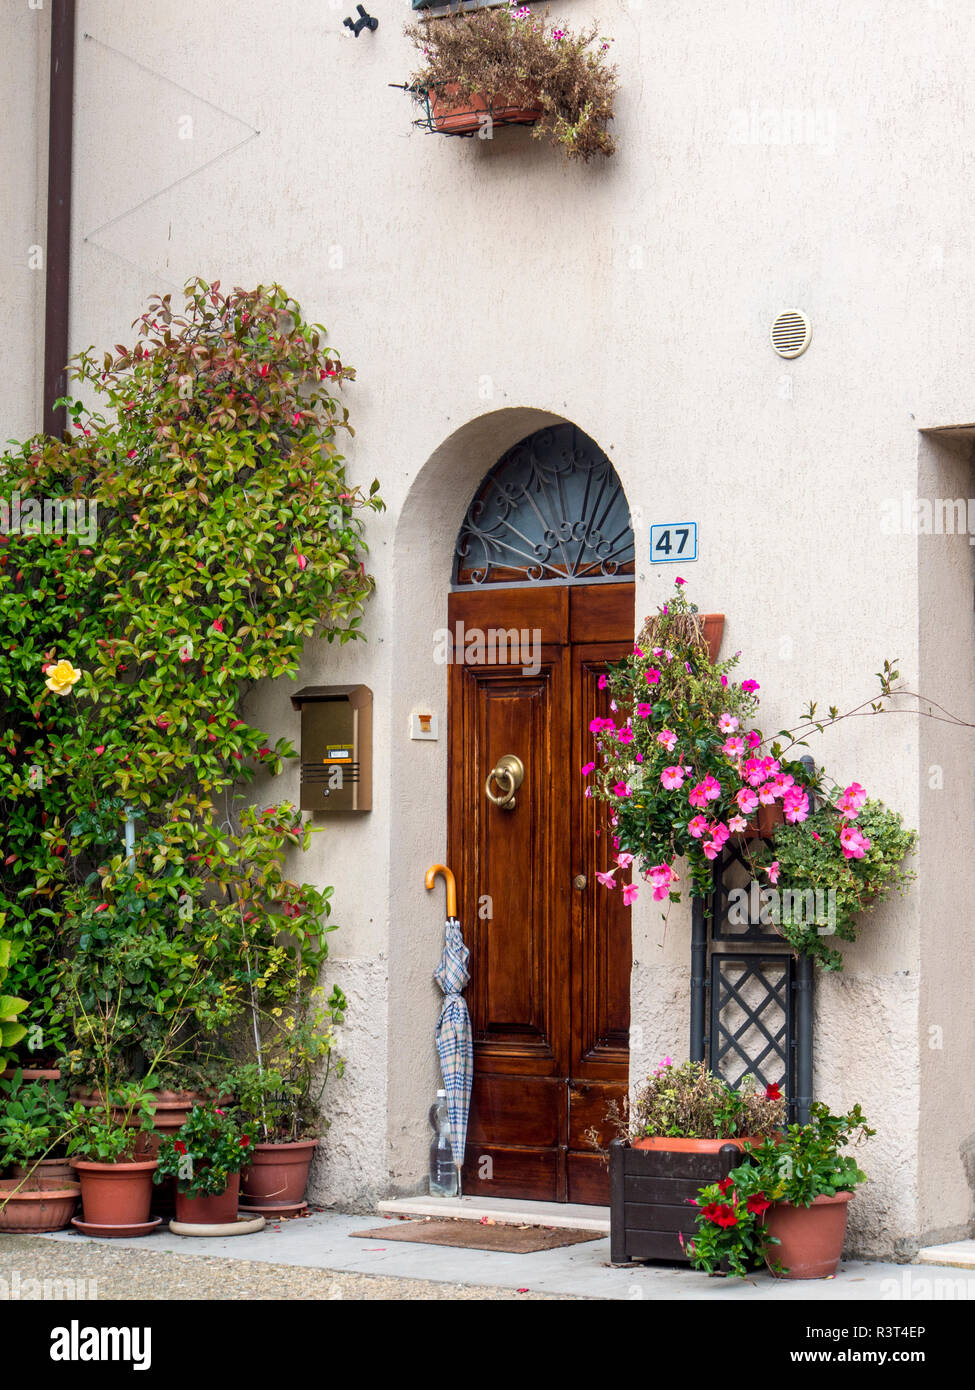 Italy, Monticiano, Door in the Tuscan town of Monticiano - Stock Image